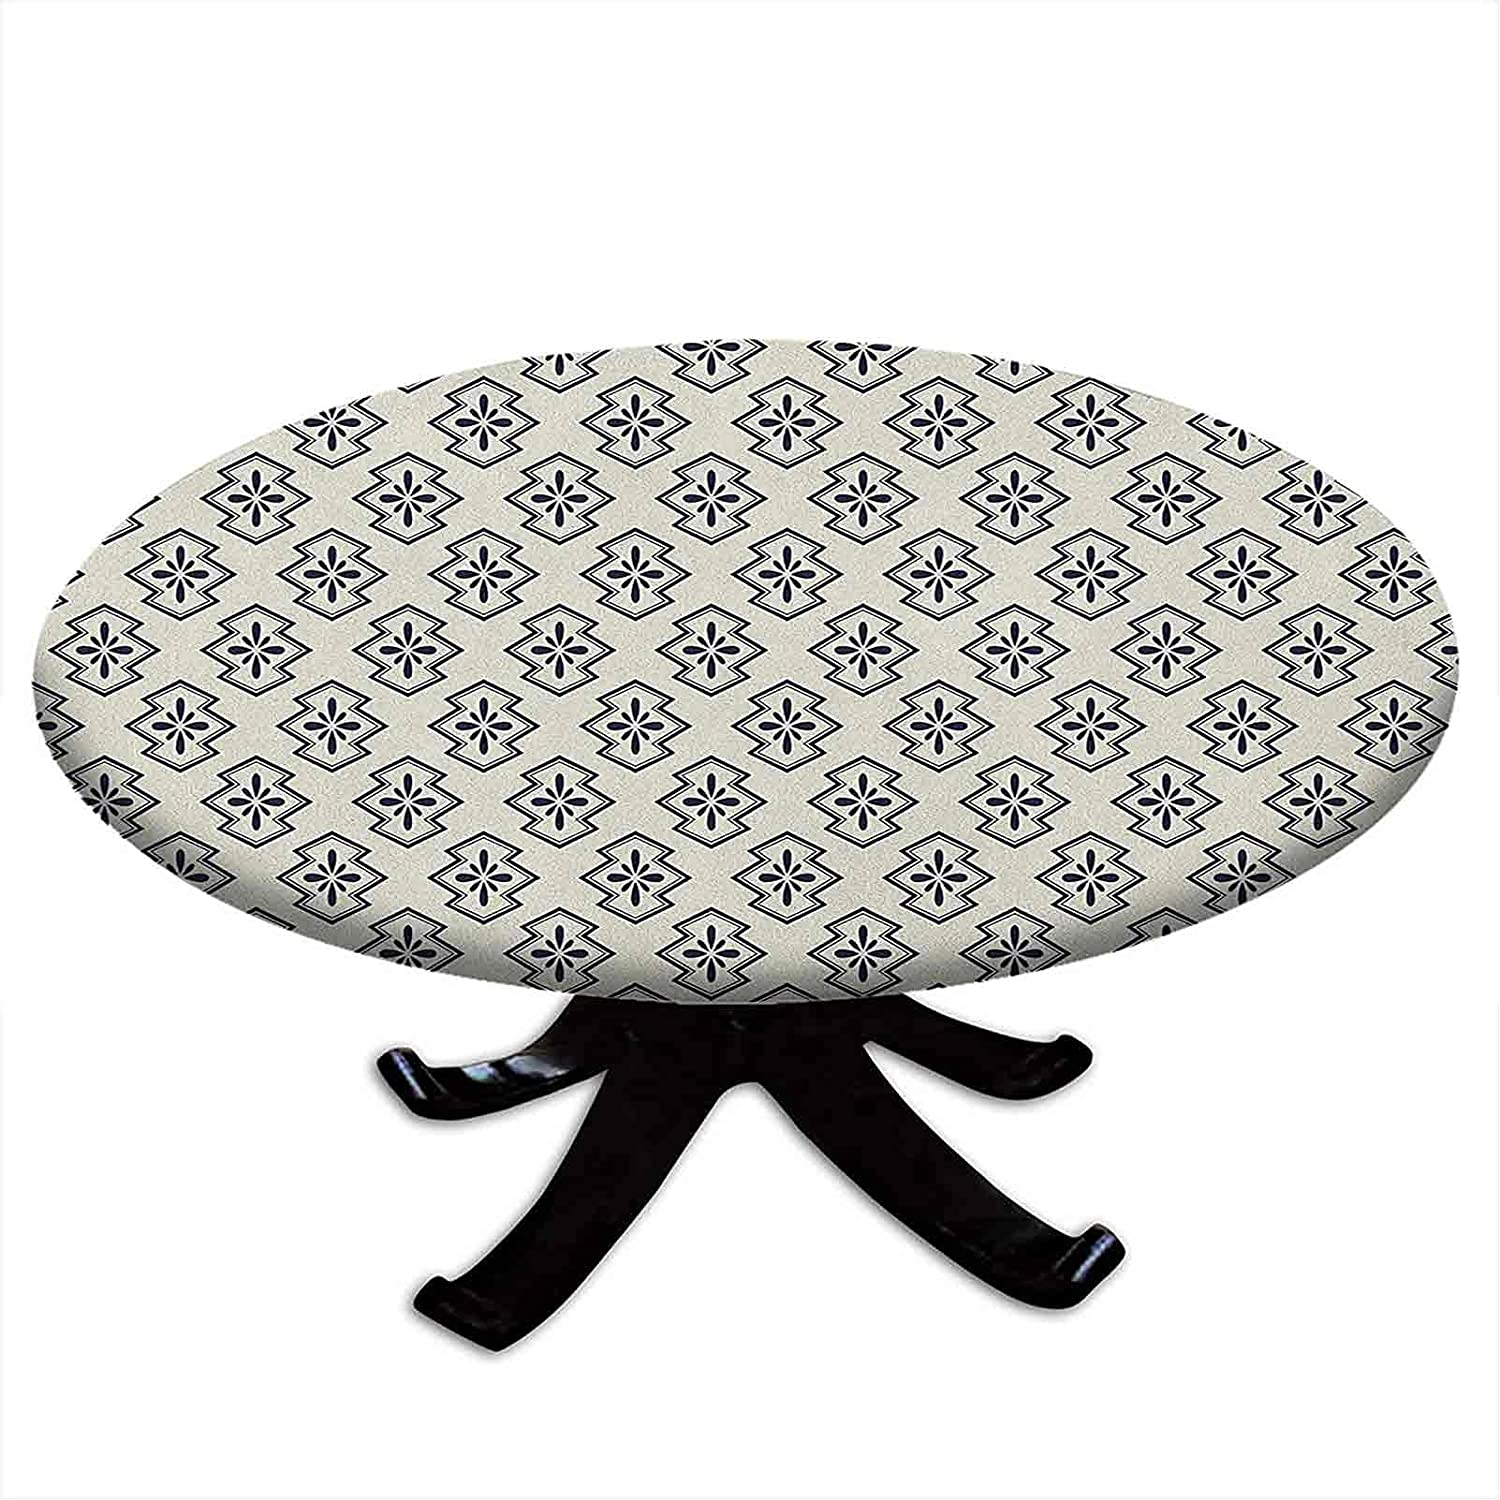 SALENEW very popular! Round Tablecloth with Elastic Edges Abstract Indianapolis Mall G Flower Patterned